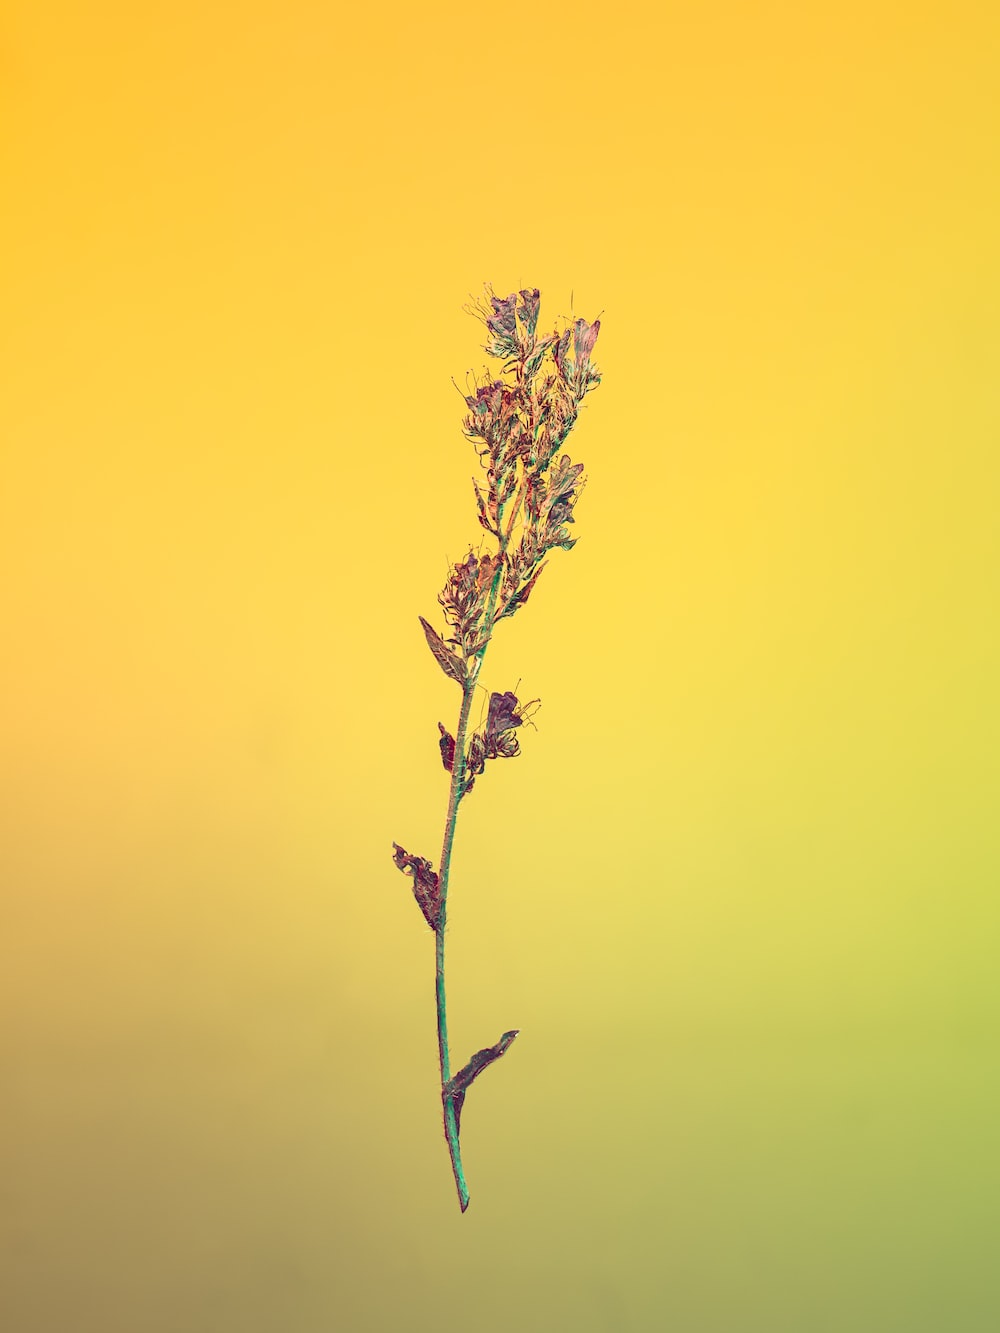 brown plant under yellow sky